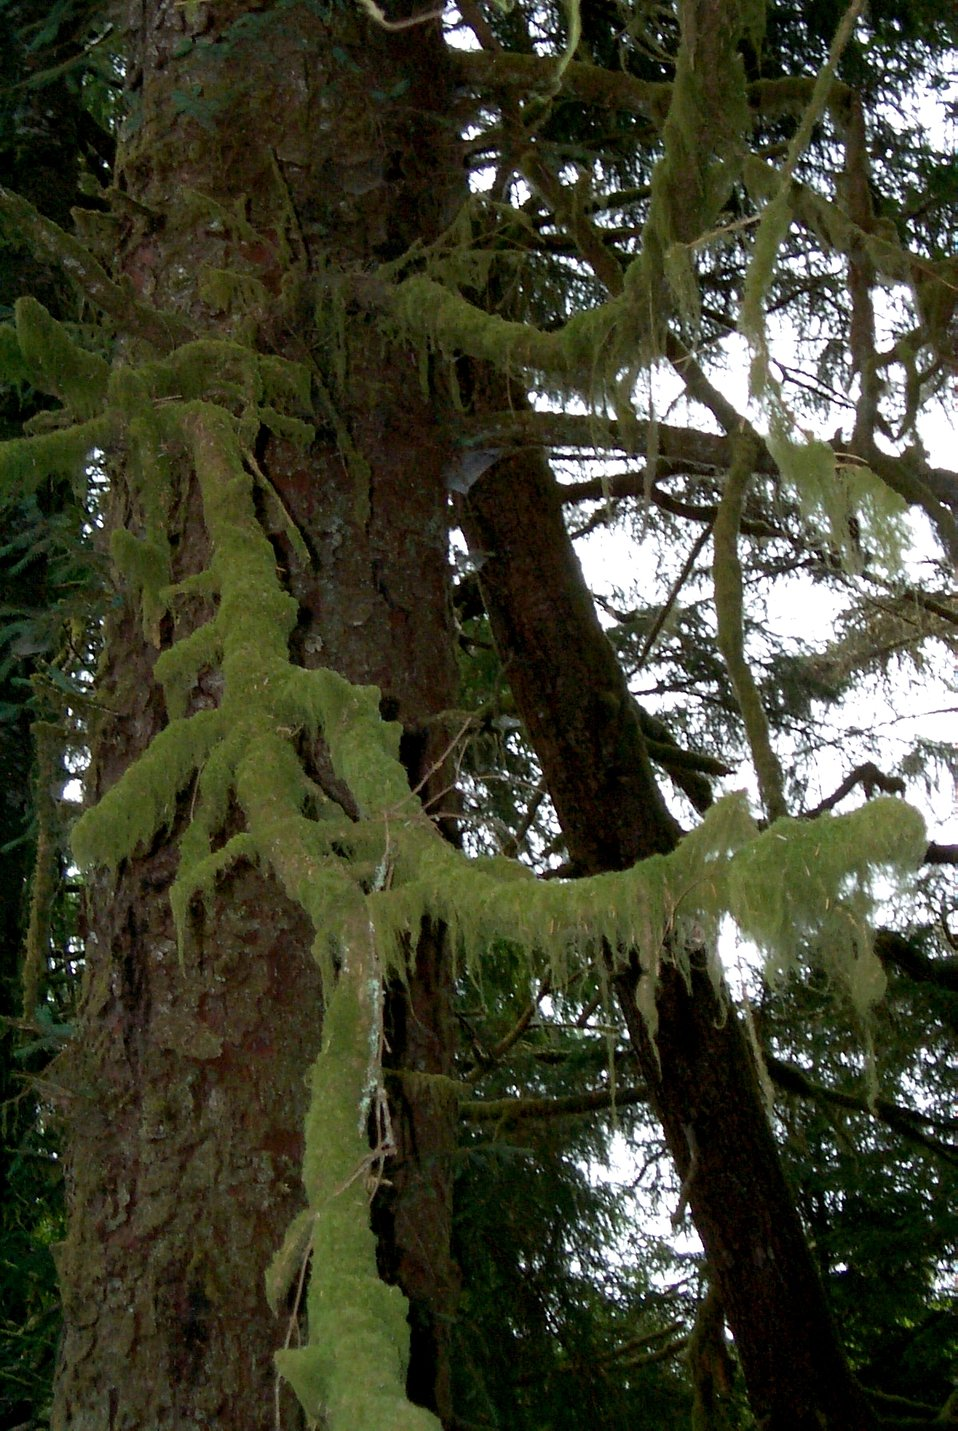 Moss on fir tree at Fort Clatsop National Memorial.